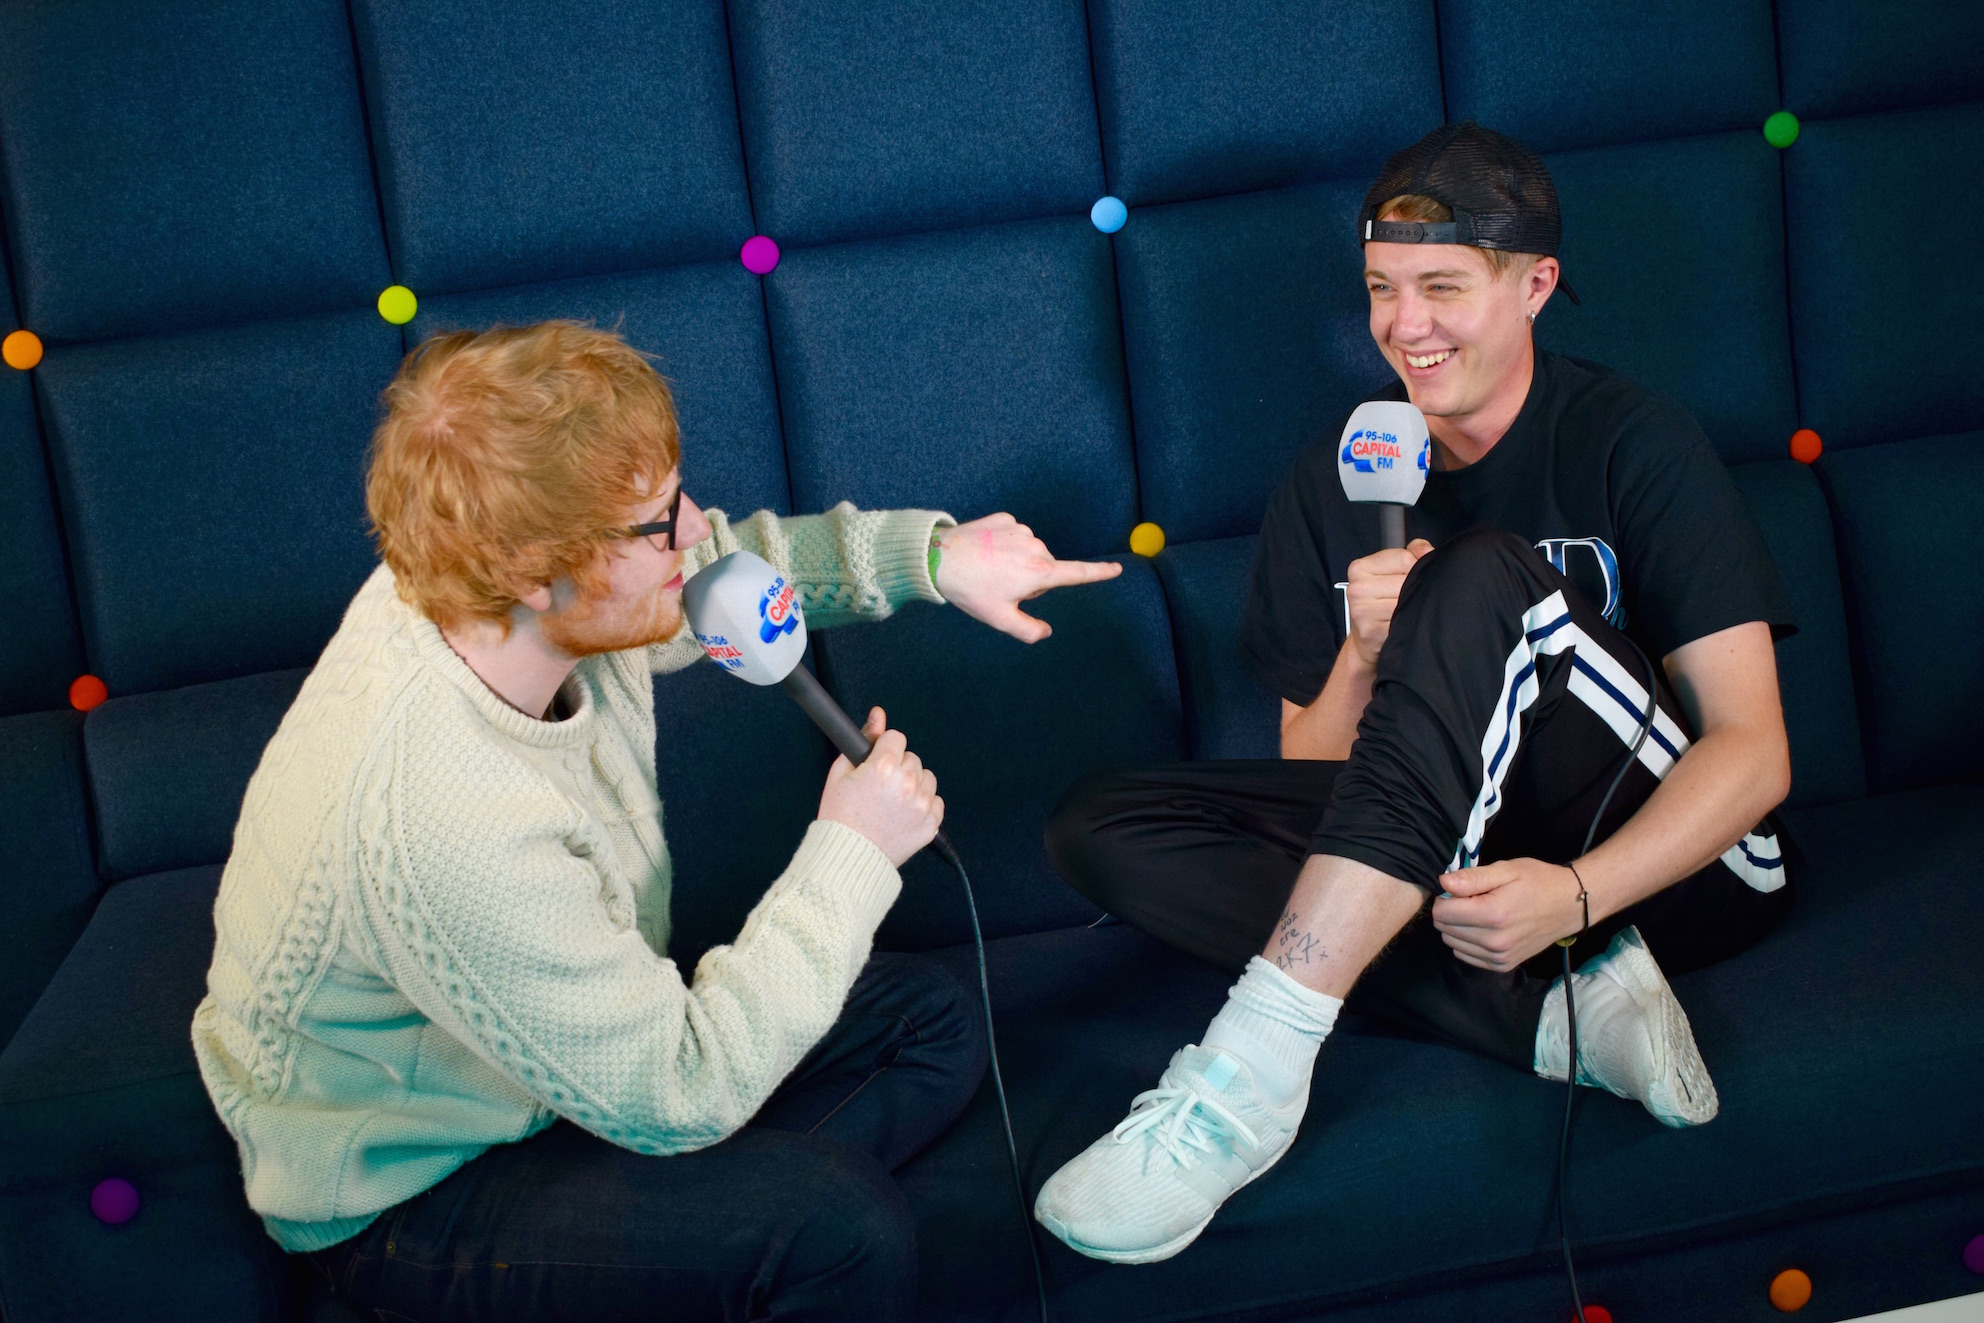 Ed Sheeran forced to call Capital FM presenter's mum to apologise for giving him a bad tat